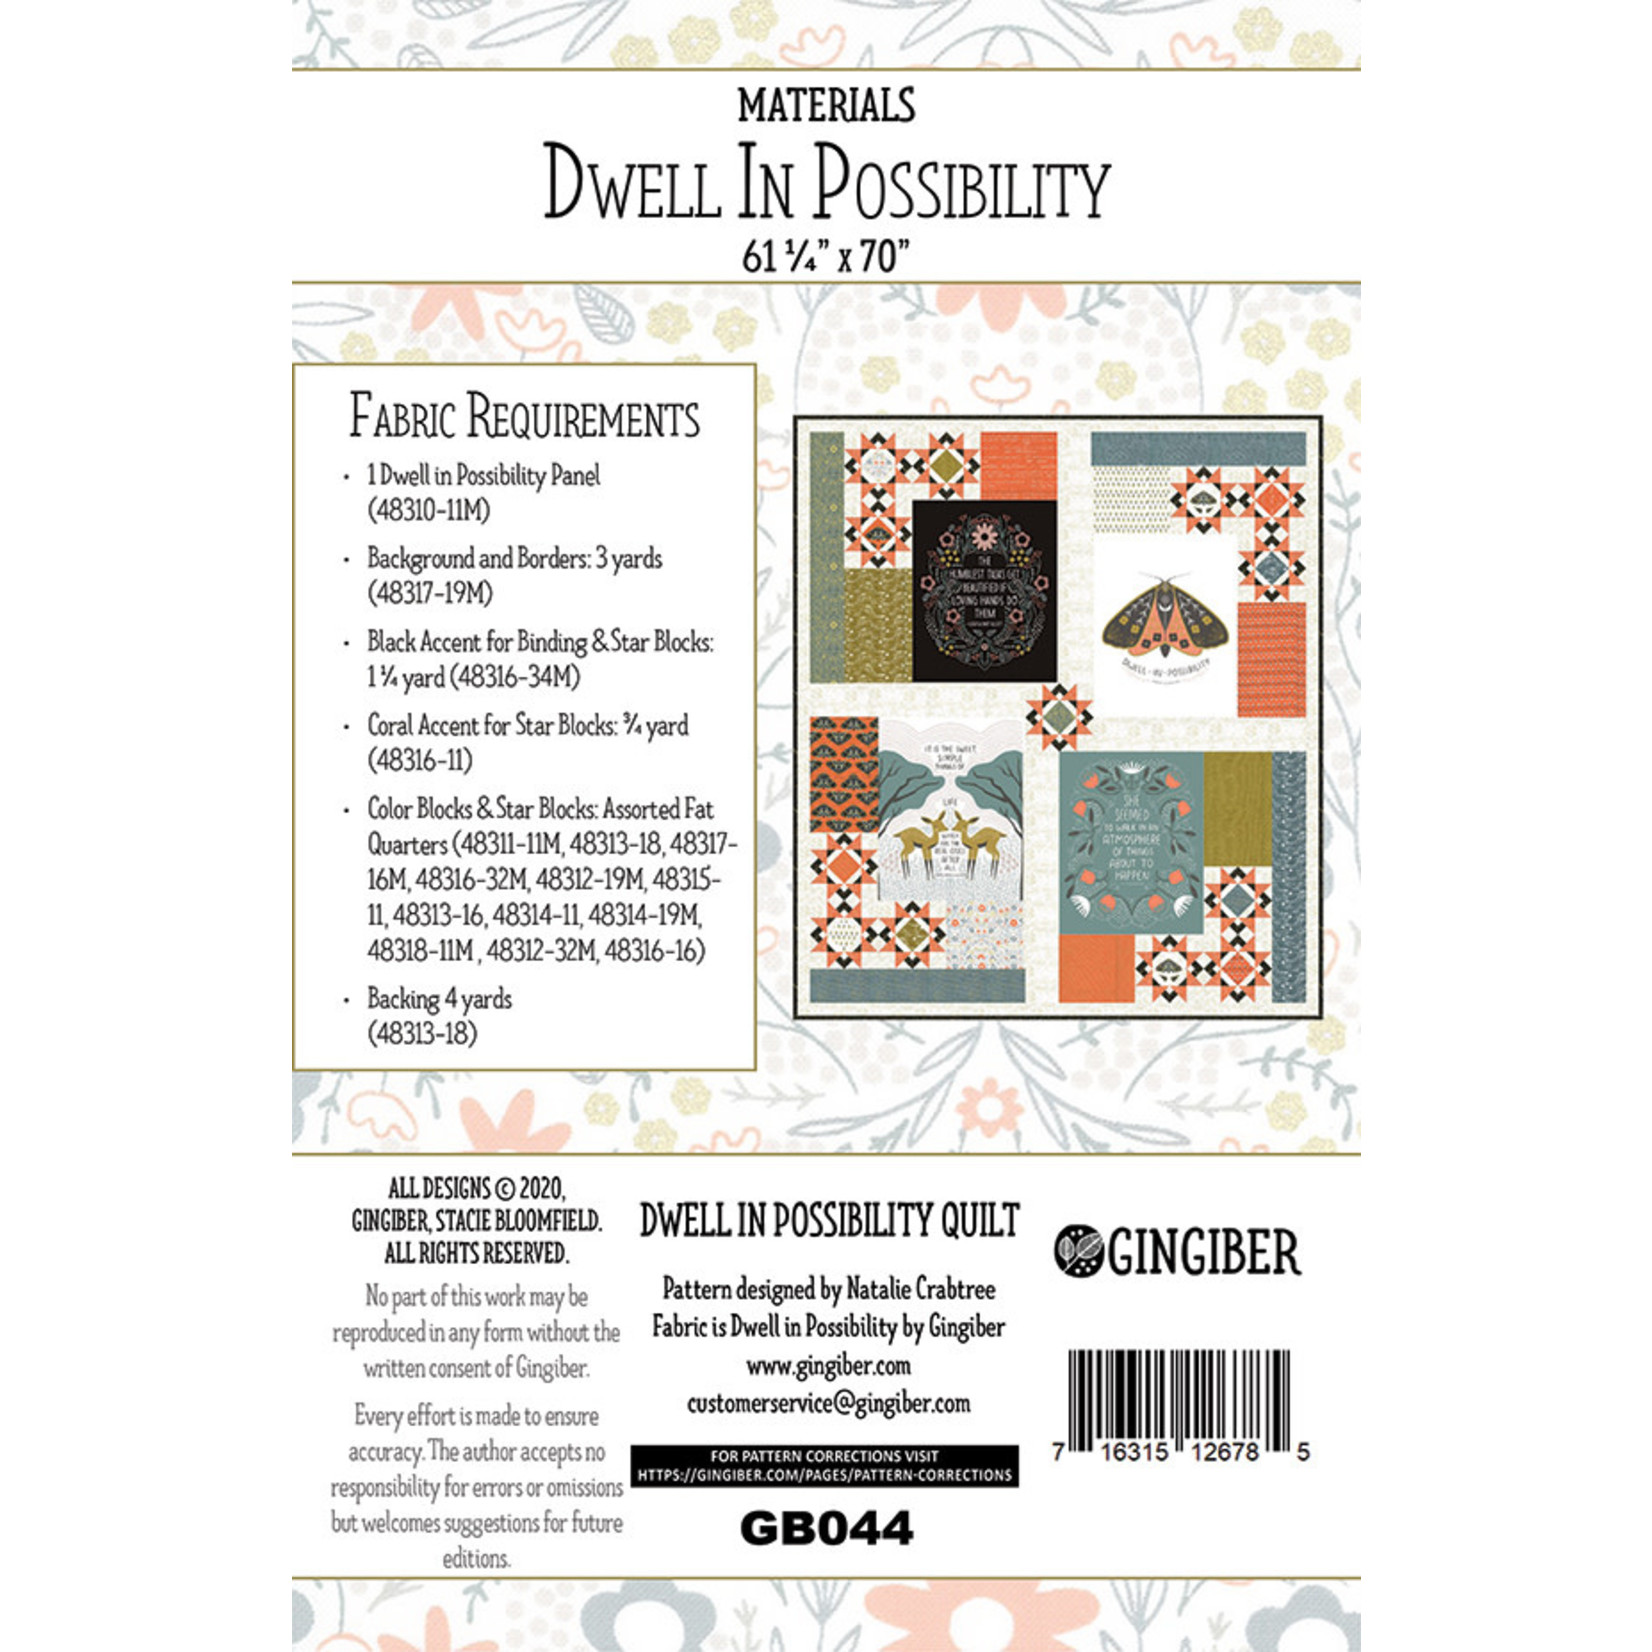 Gingiber Dwell In Possibility Quilt Kit